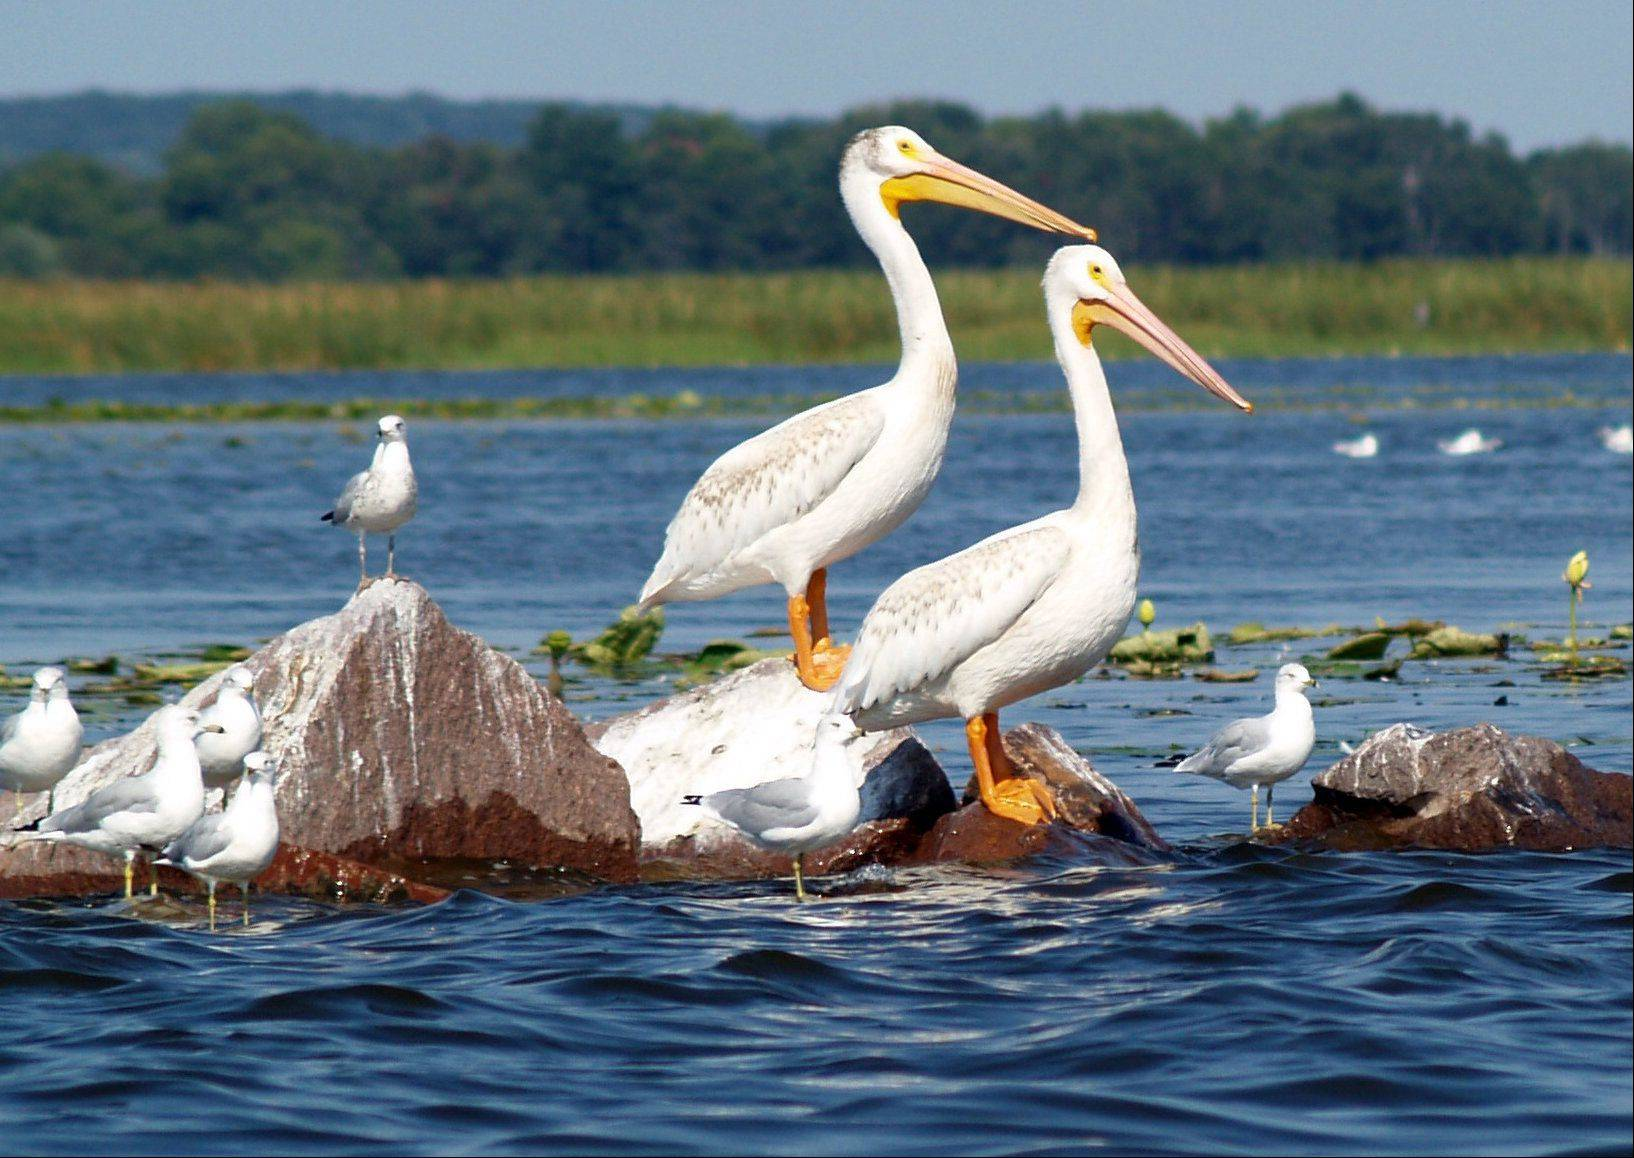 Several pelicans congregate on some rocks with gulls in Lake Puckaway in Princeton, Wisconsin.